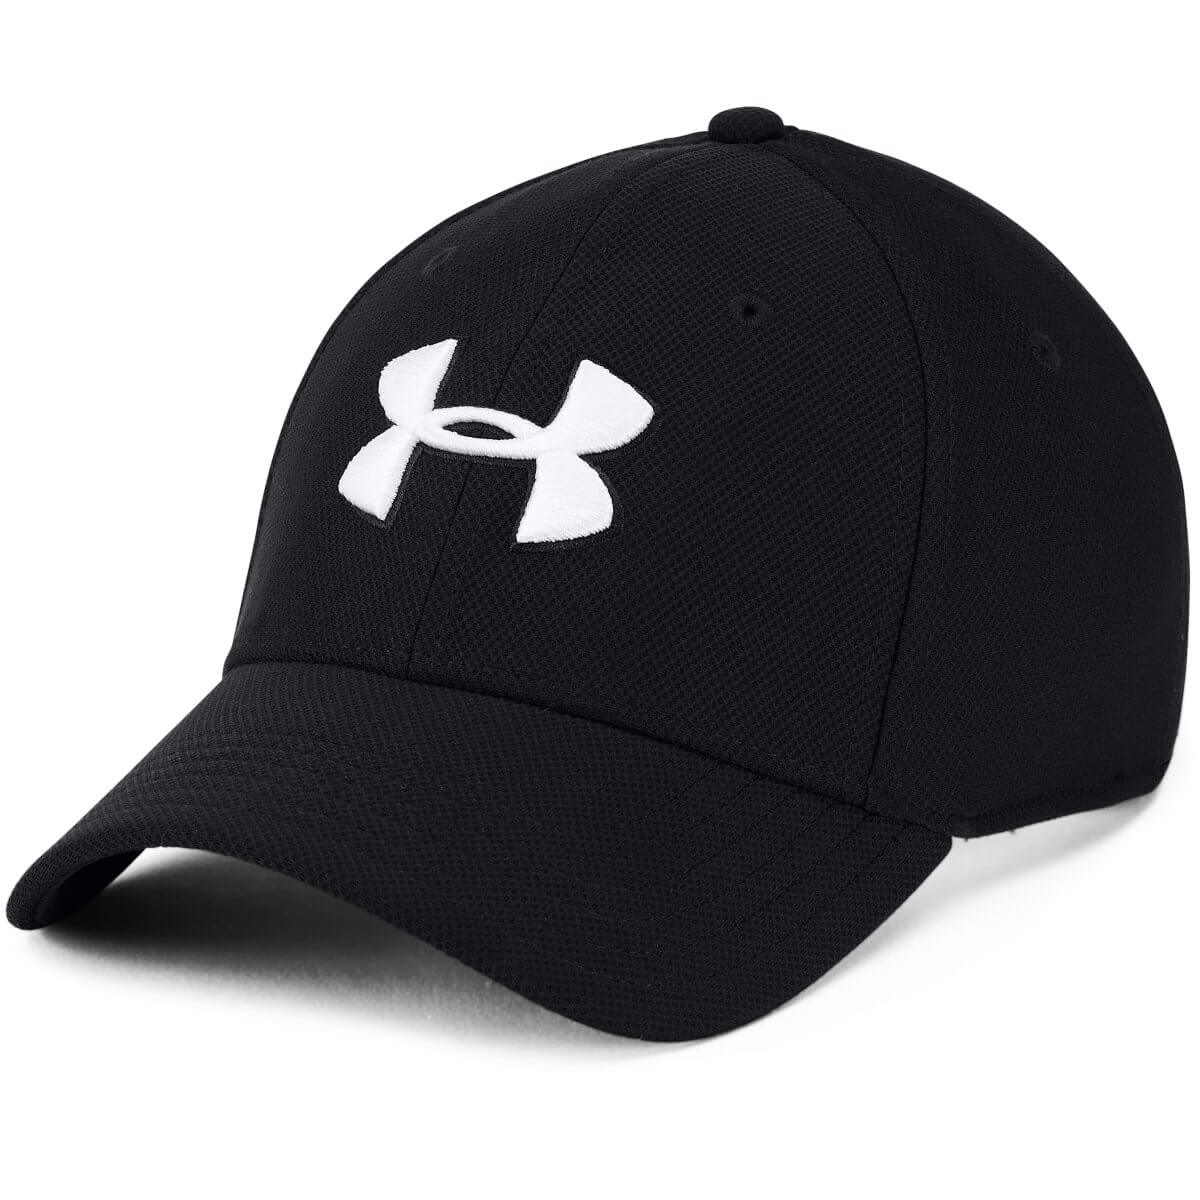 Under Armour Šiltovka Men's Blitzing 3.0 Cap BlackWhite LXL